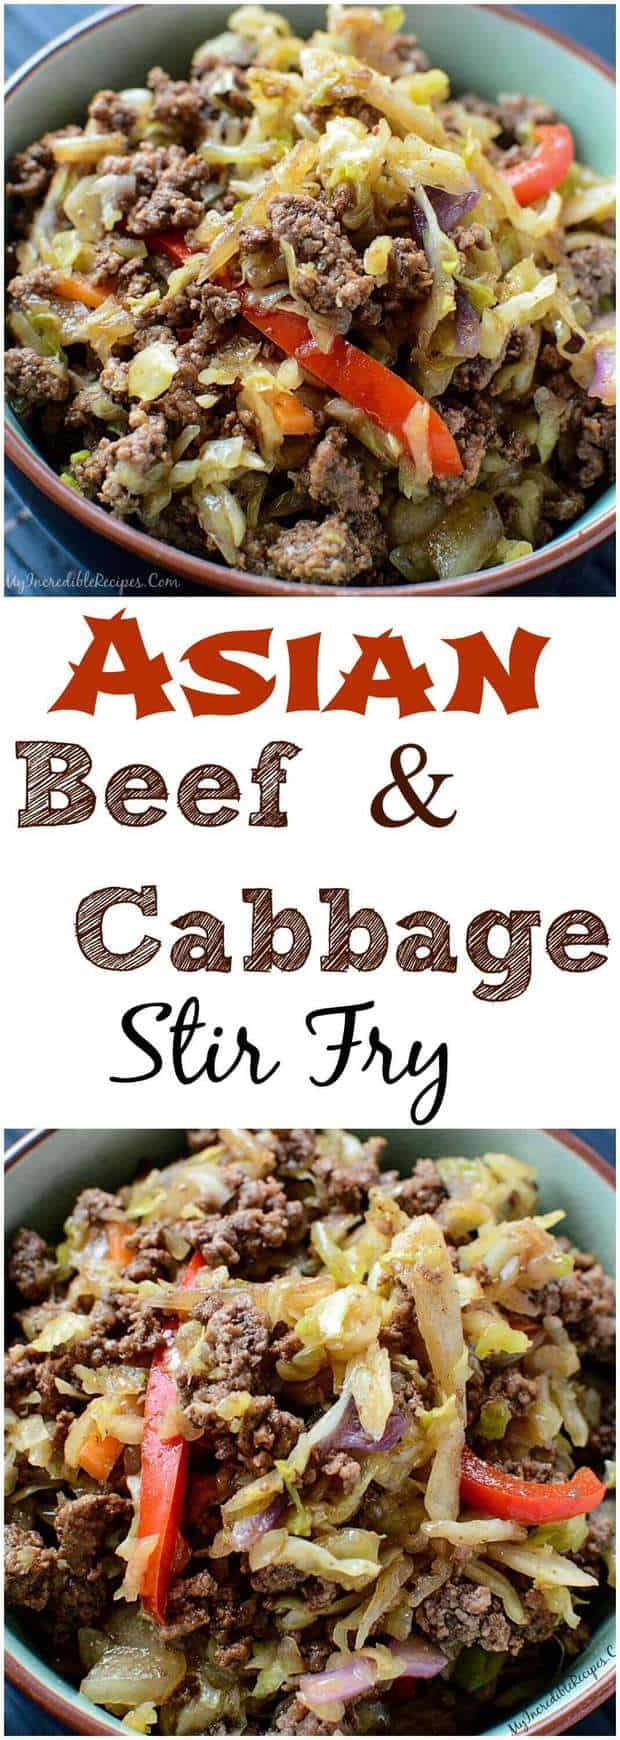 Easy Asian Beef and Cabbage Stir Fry